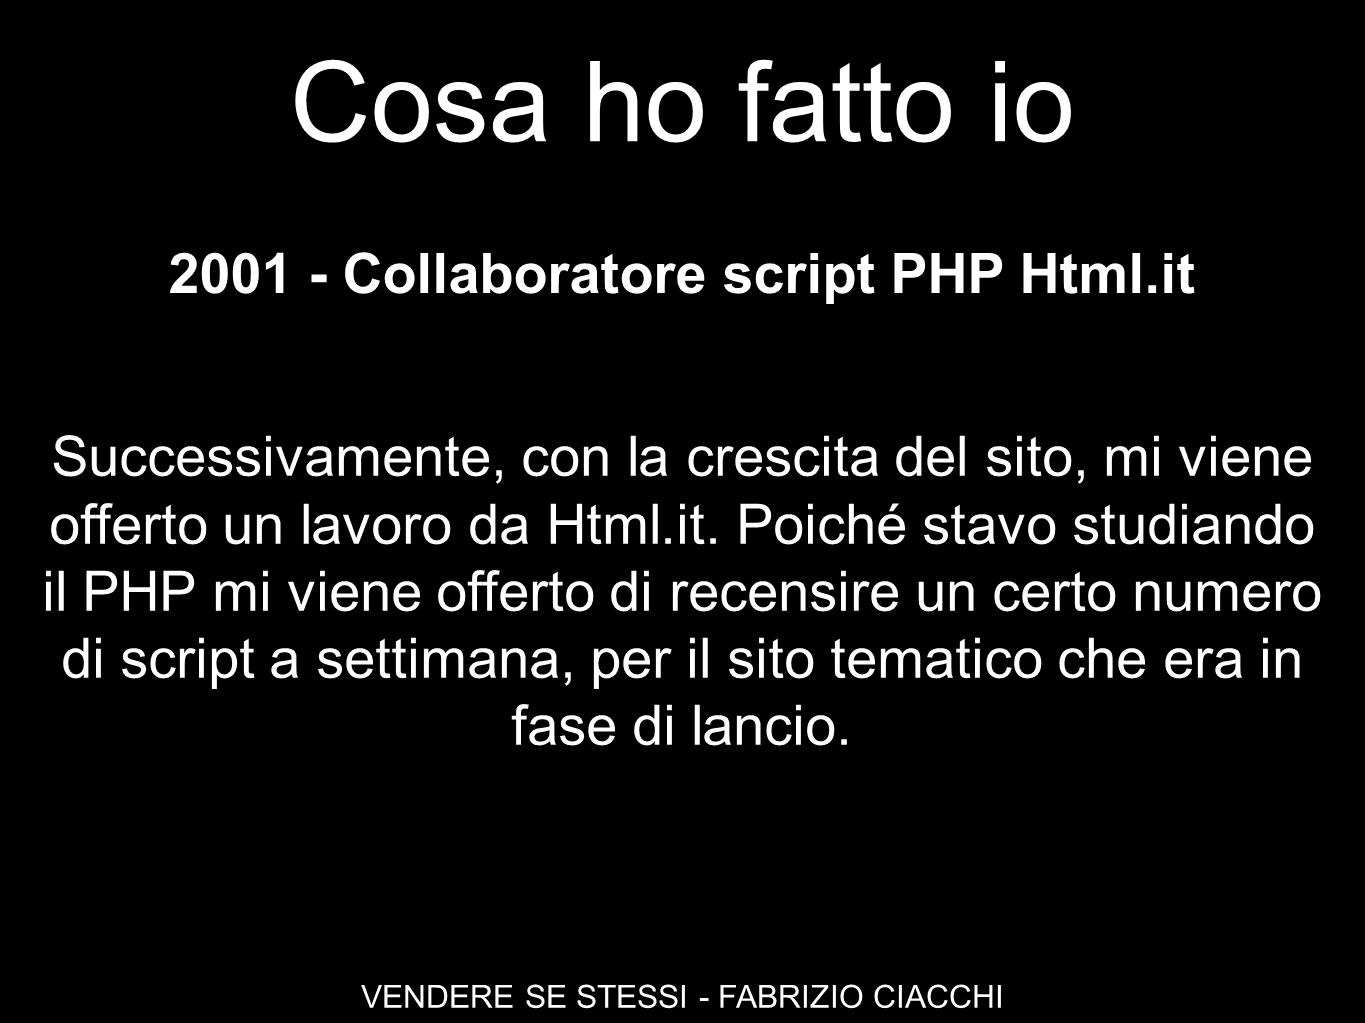 2001 - Collaboratore script PHP Html.it